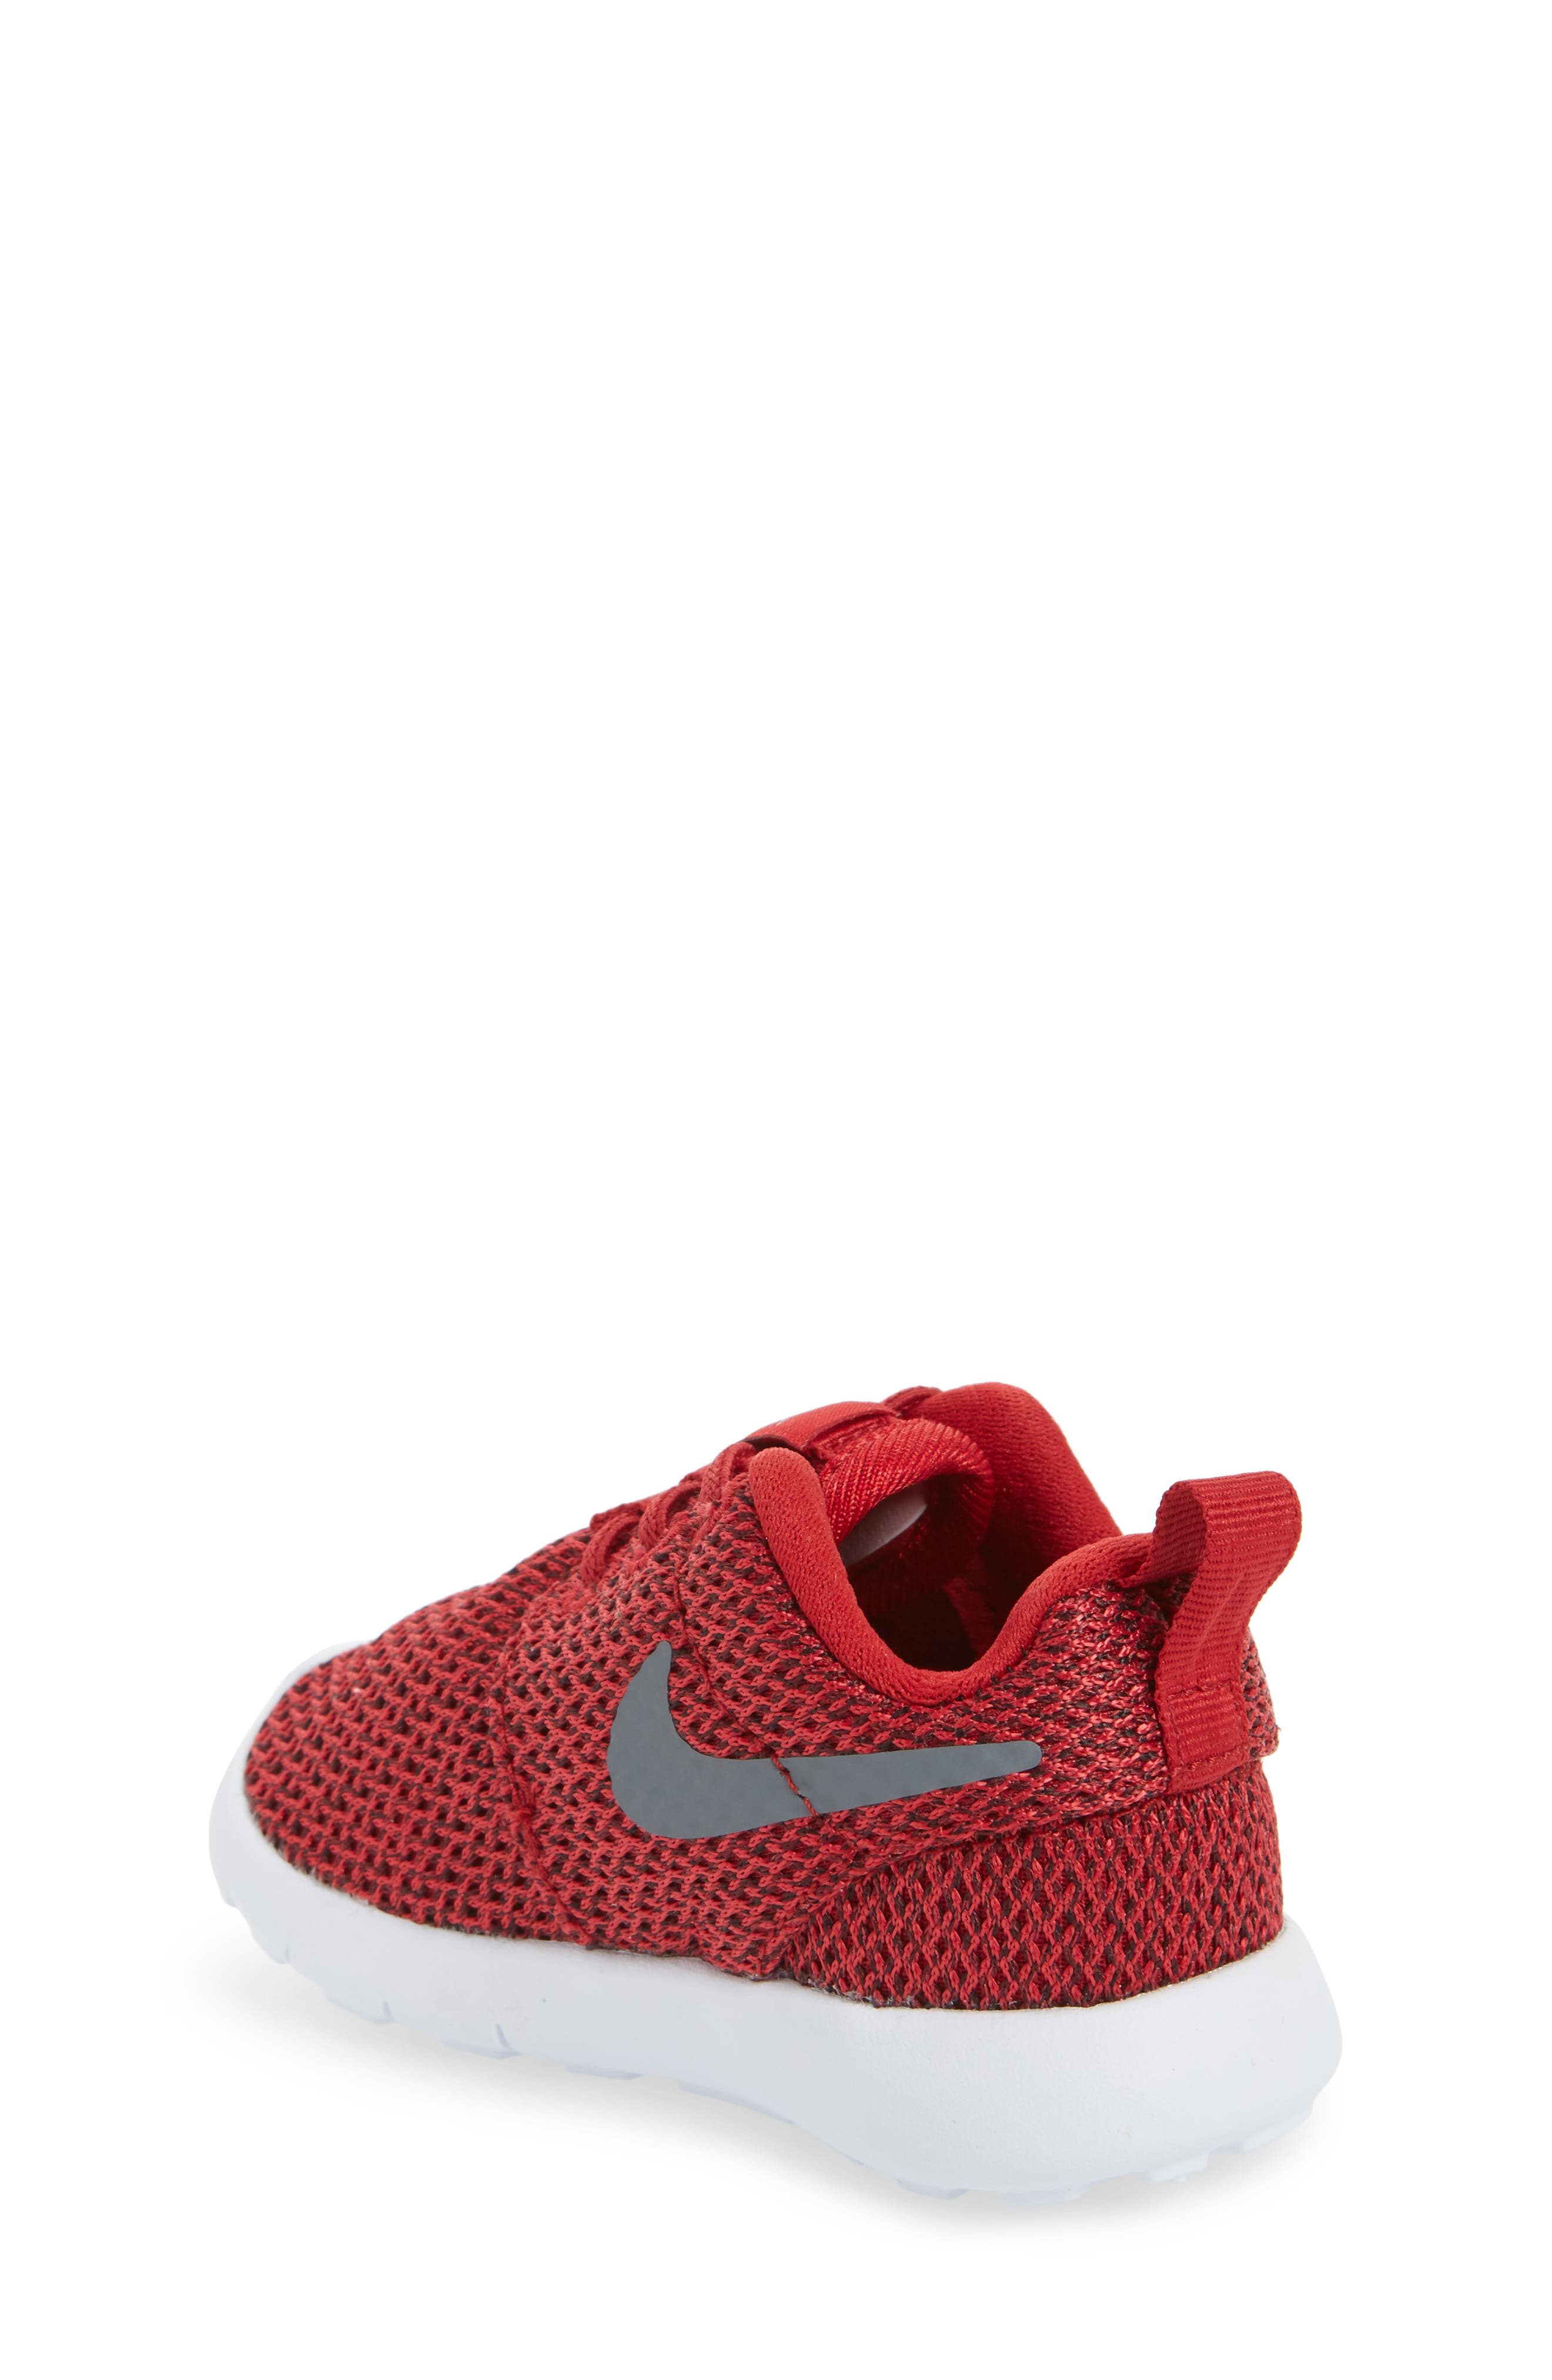 'Roshe Run' Sneaker,                             Alternate thumbnail 2, color,                             Gym Red/ Cool Grey/ Anthracite